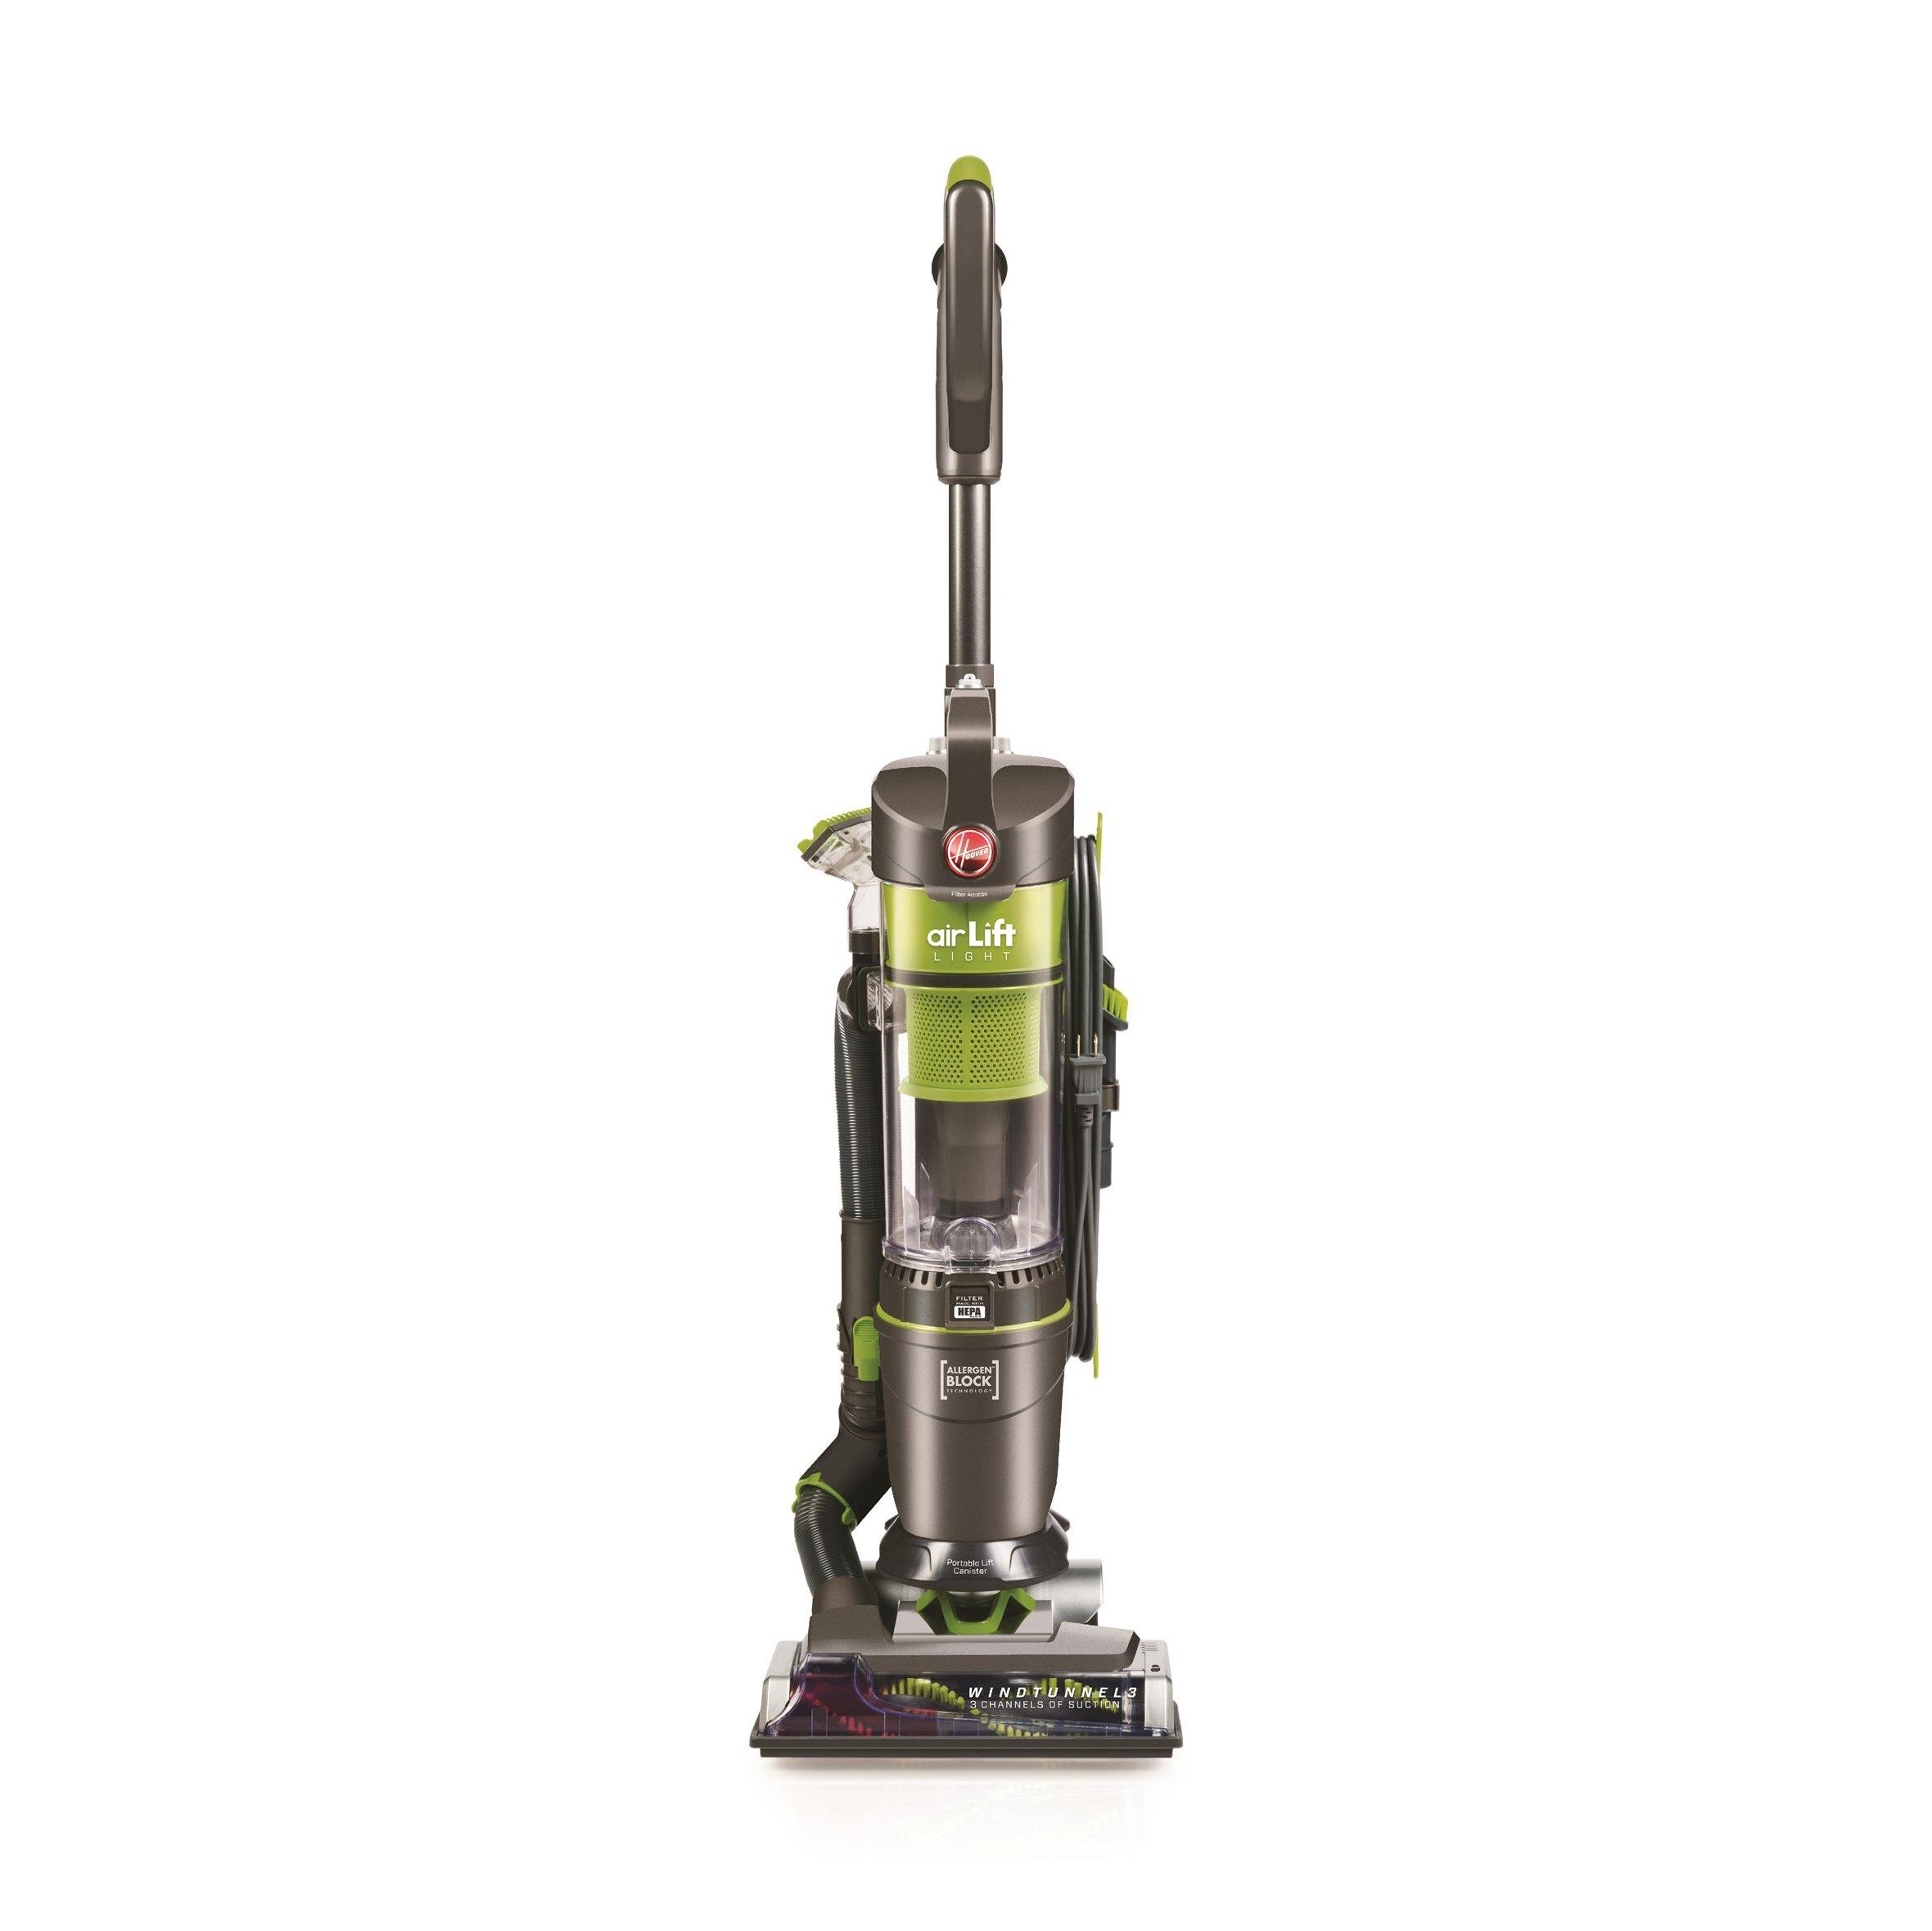 Reconditioned Air Lift Light Upright Vacuum